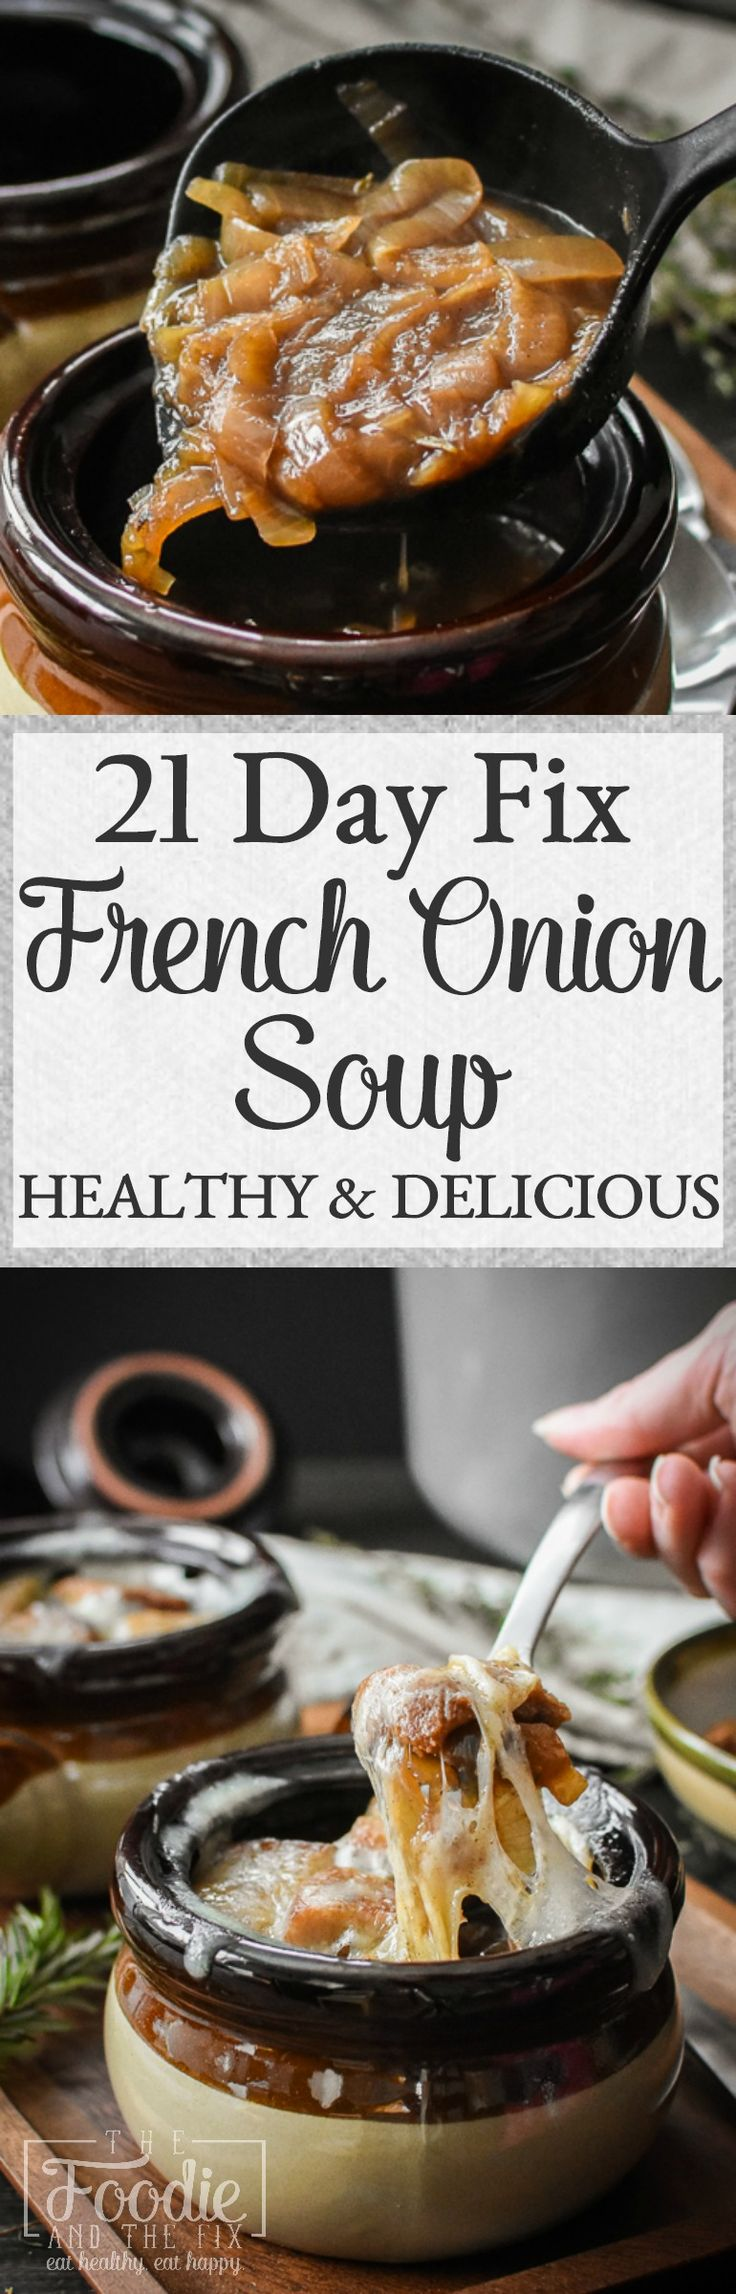 21 Day Fix French Onion Soup | The Foodie and The Fix